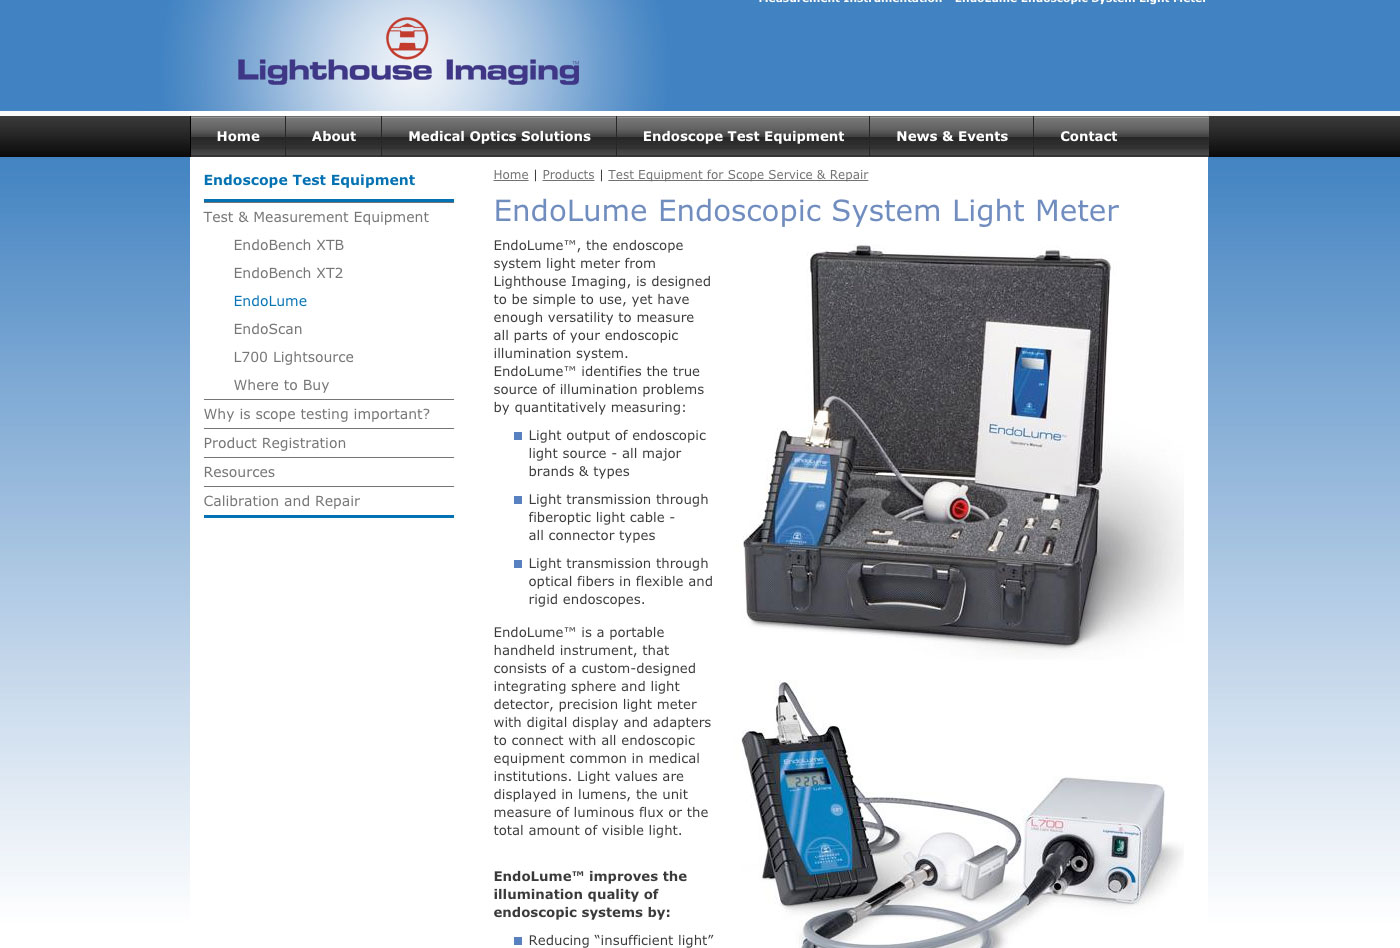 EndoLume Light Meter